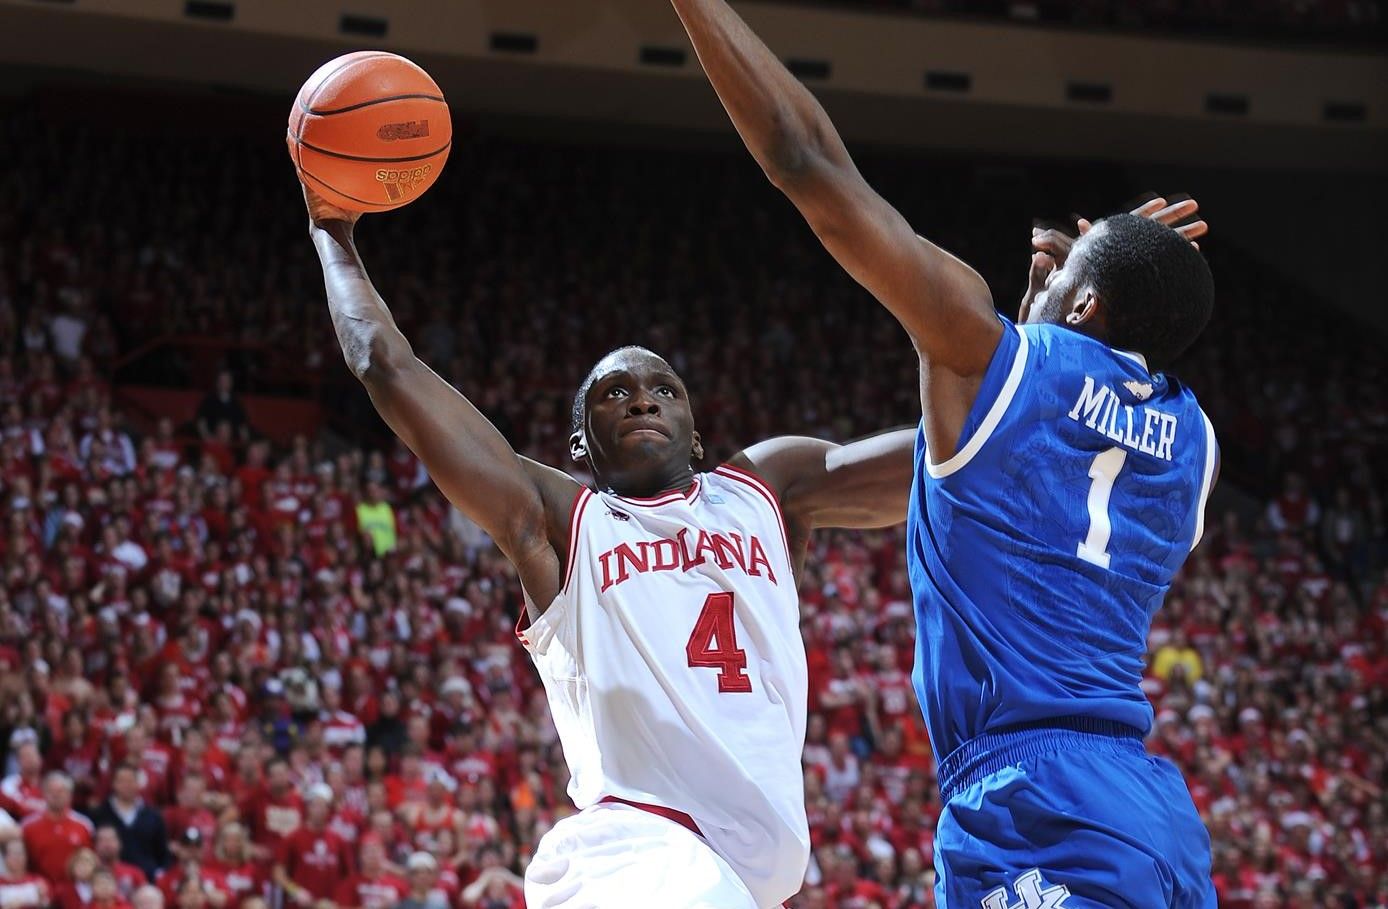 df9630c017d Oladipo To Be Honored Prior To Purdue Game - Indiana University ...